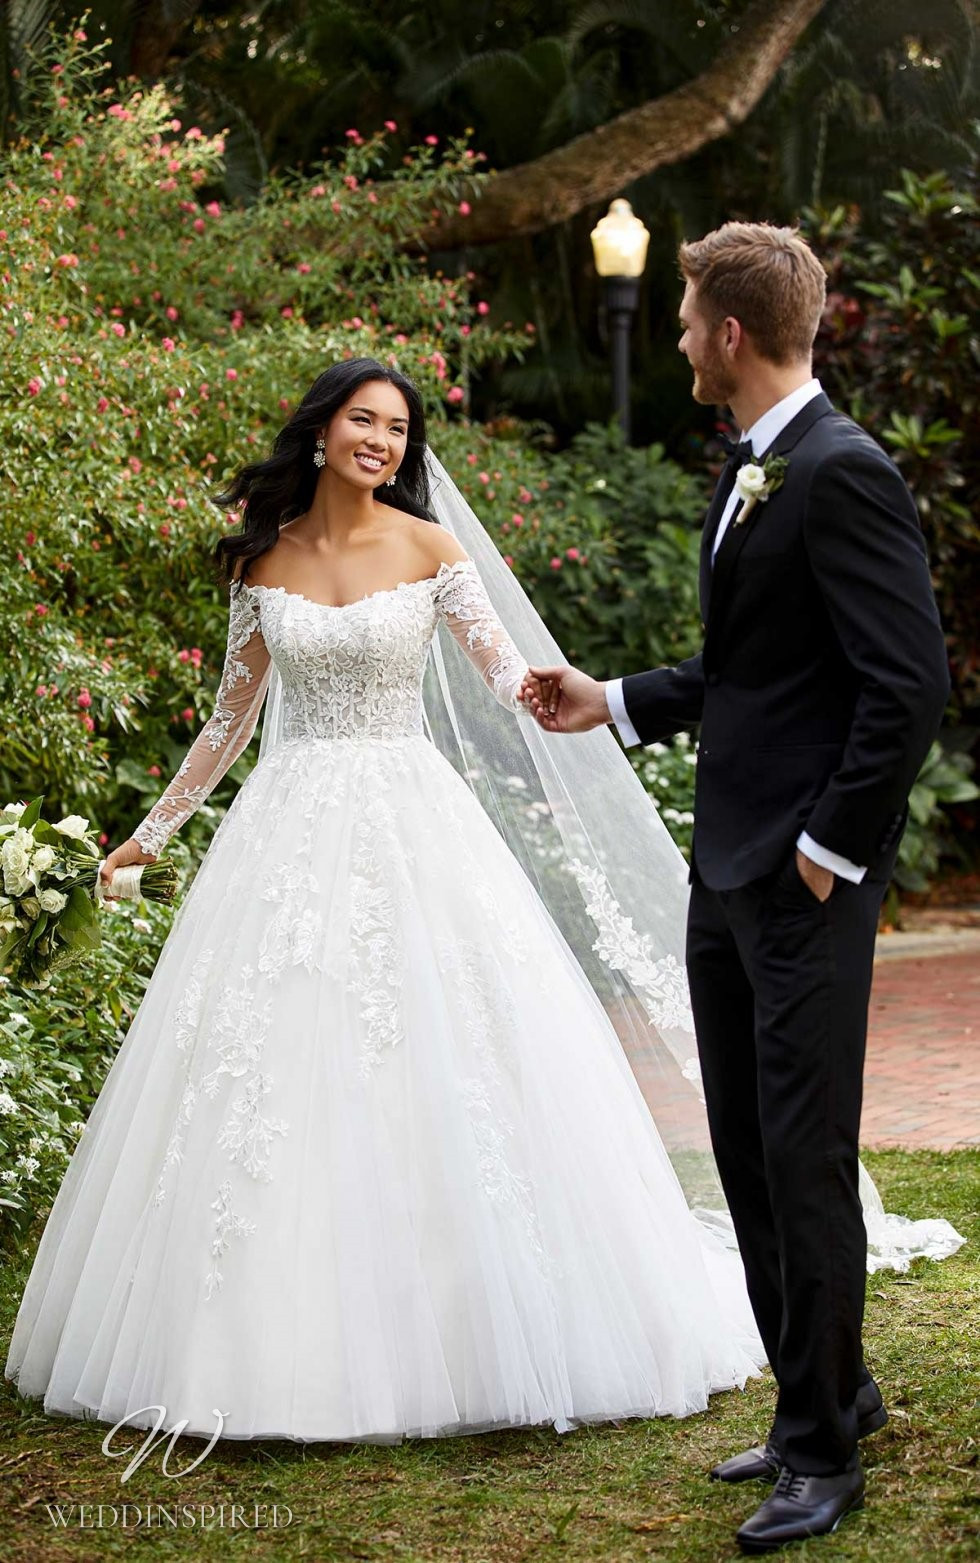 An Essense of Australia off the shoulder lace and tulle princess ball gown wedding dress with long sleeves